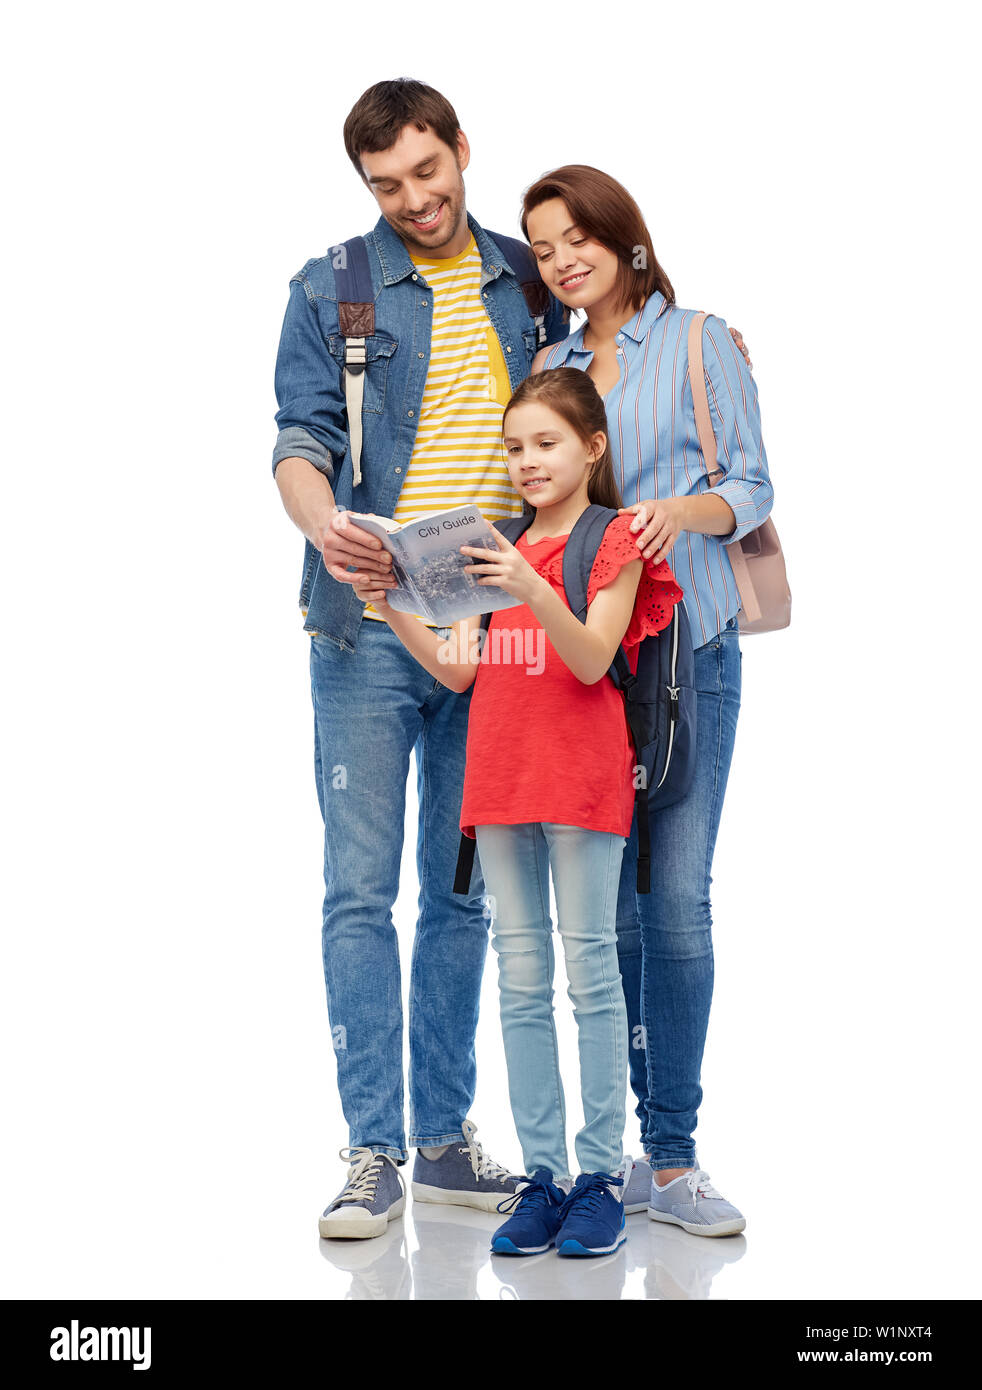 happy family with travel guide and backpacks - Stock Image